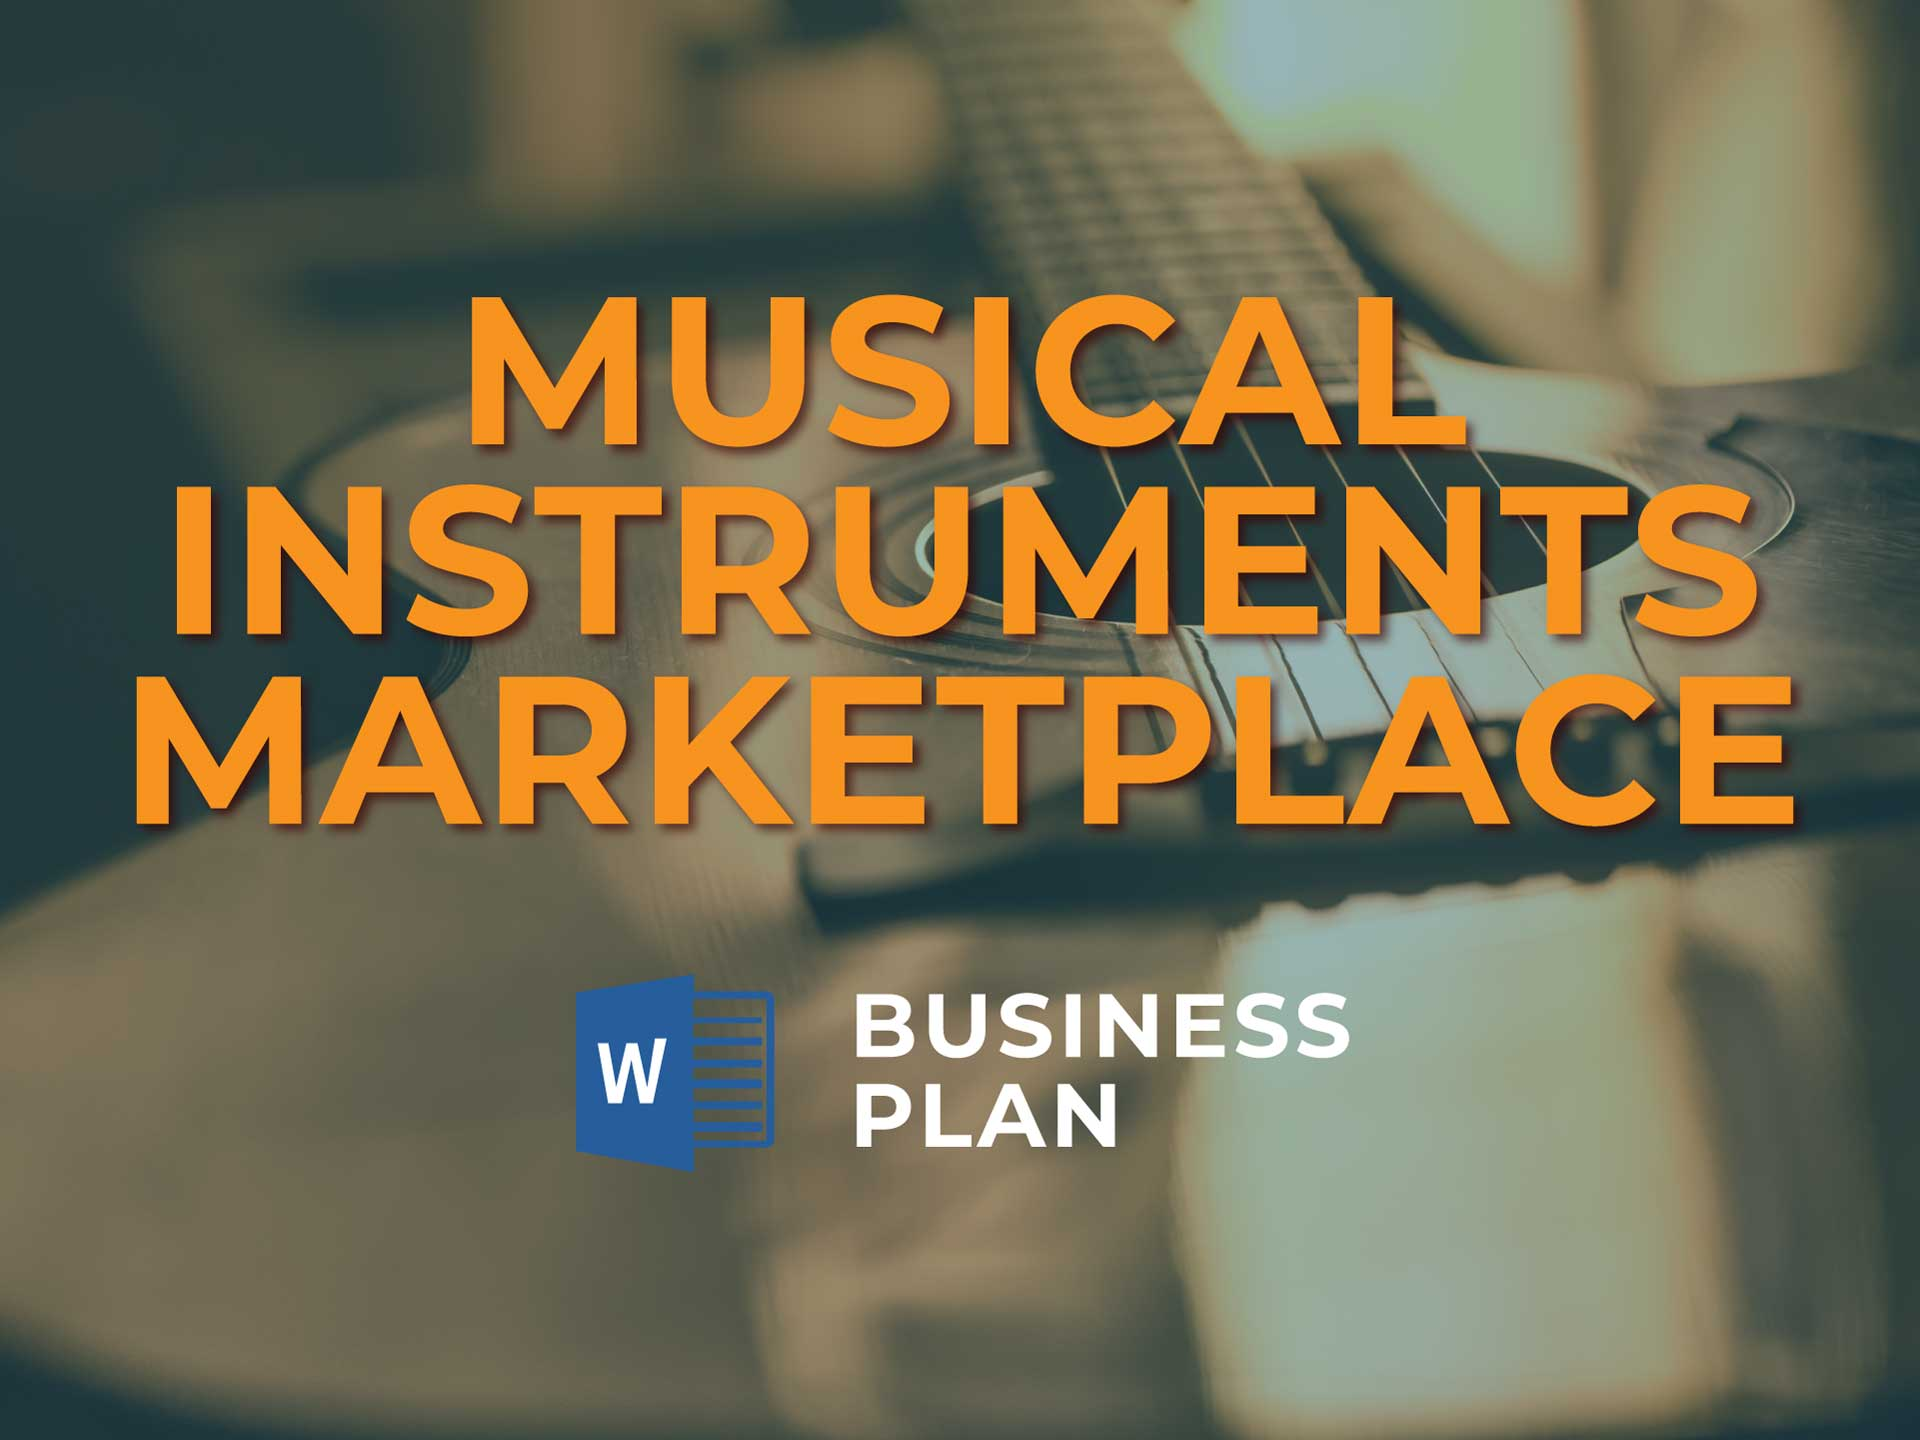 Musical Instruments Marketplace